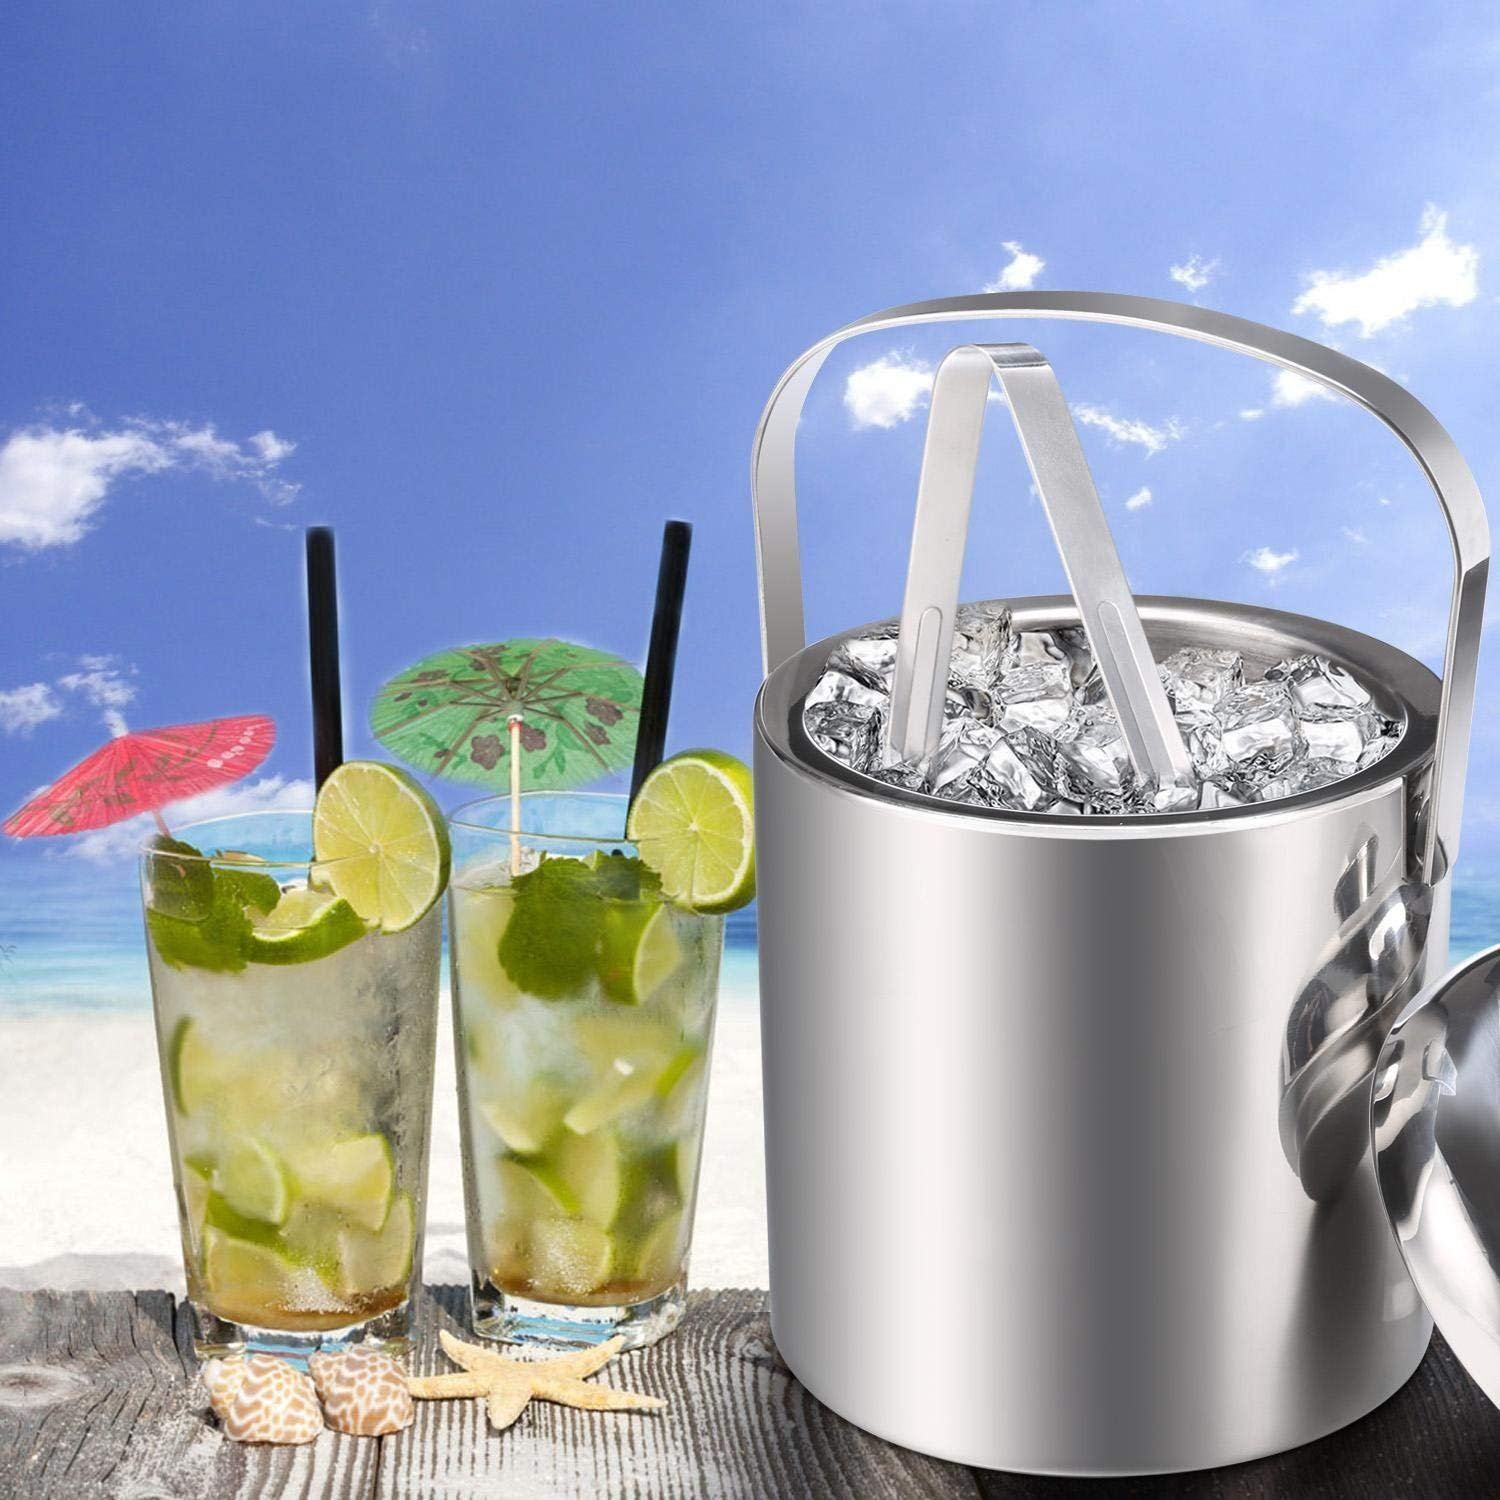 Double Wall Insulated Stainless Steel Handle Ice Bucket Chrome Finish Thick Ice Pail with Tweezers